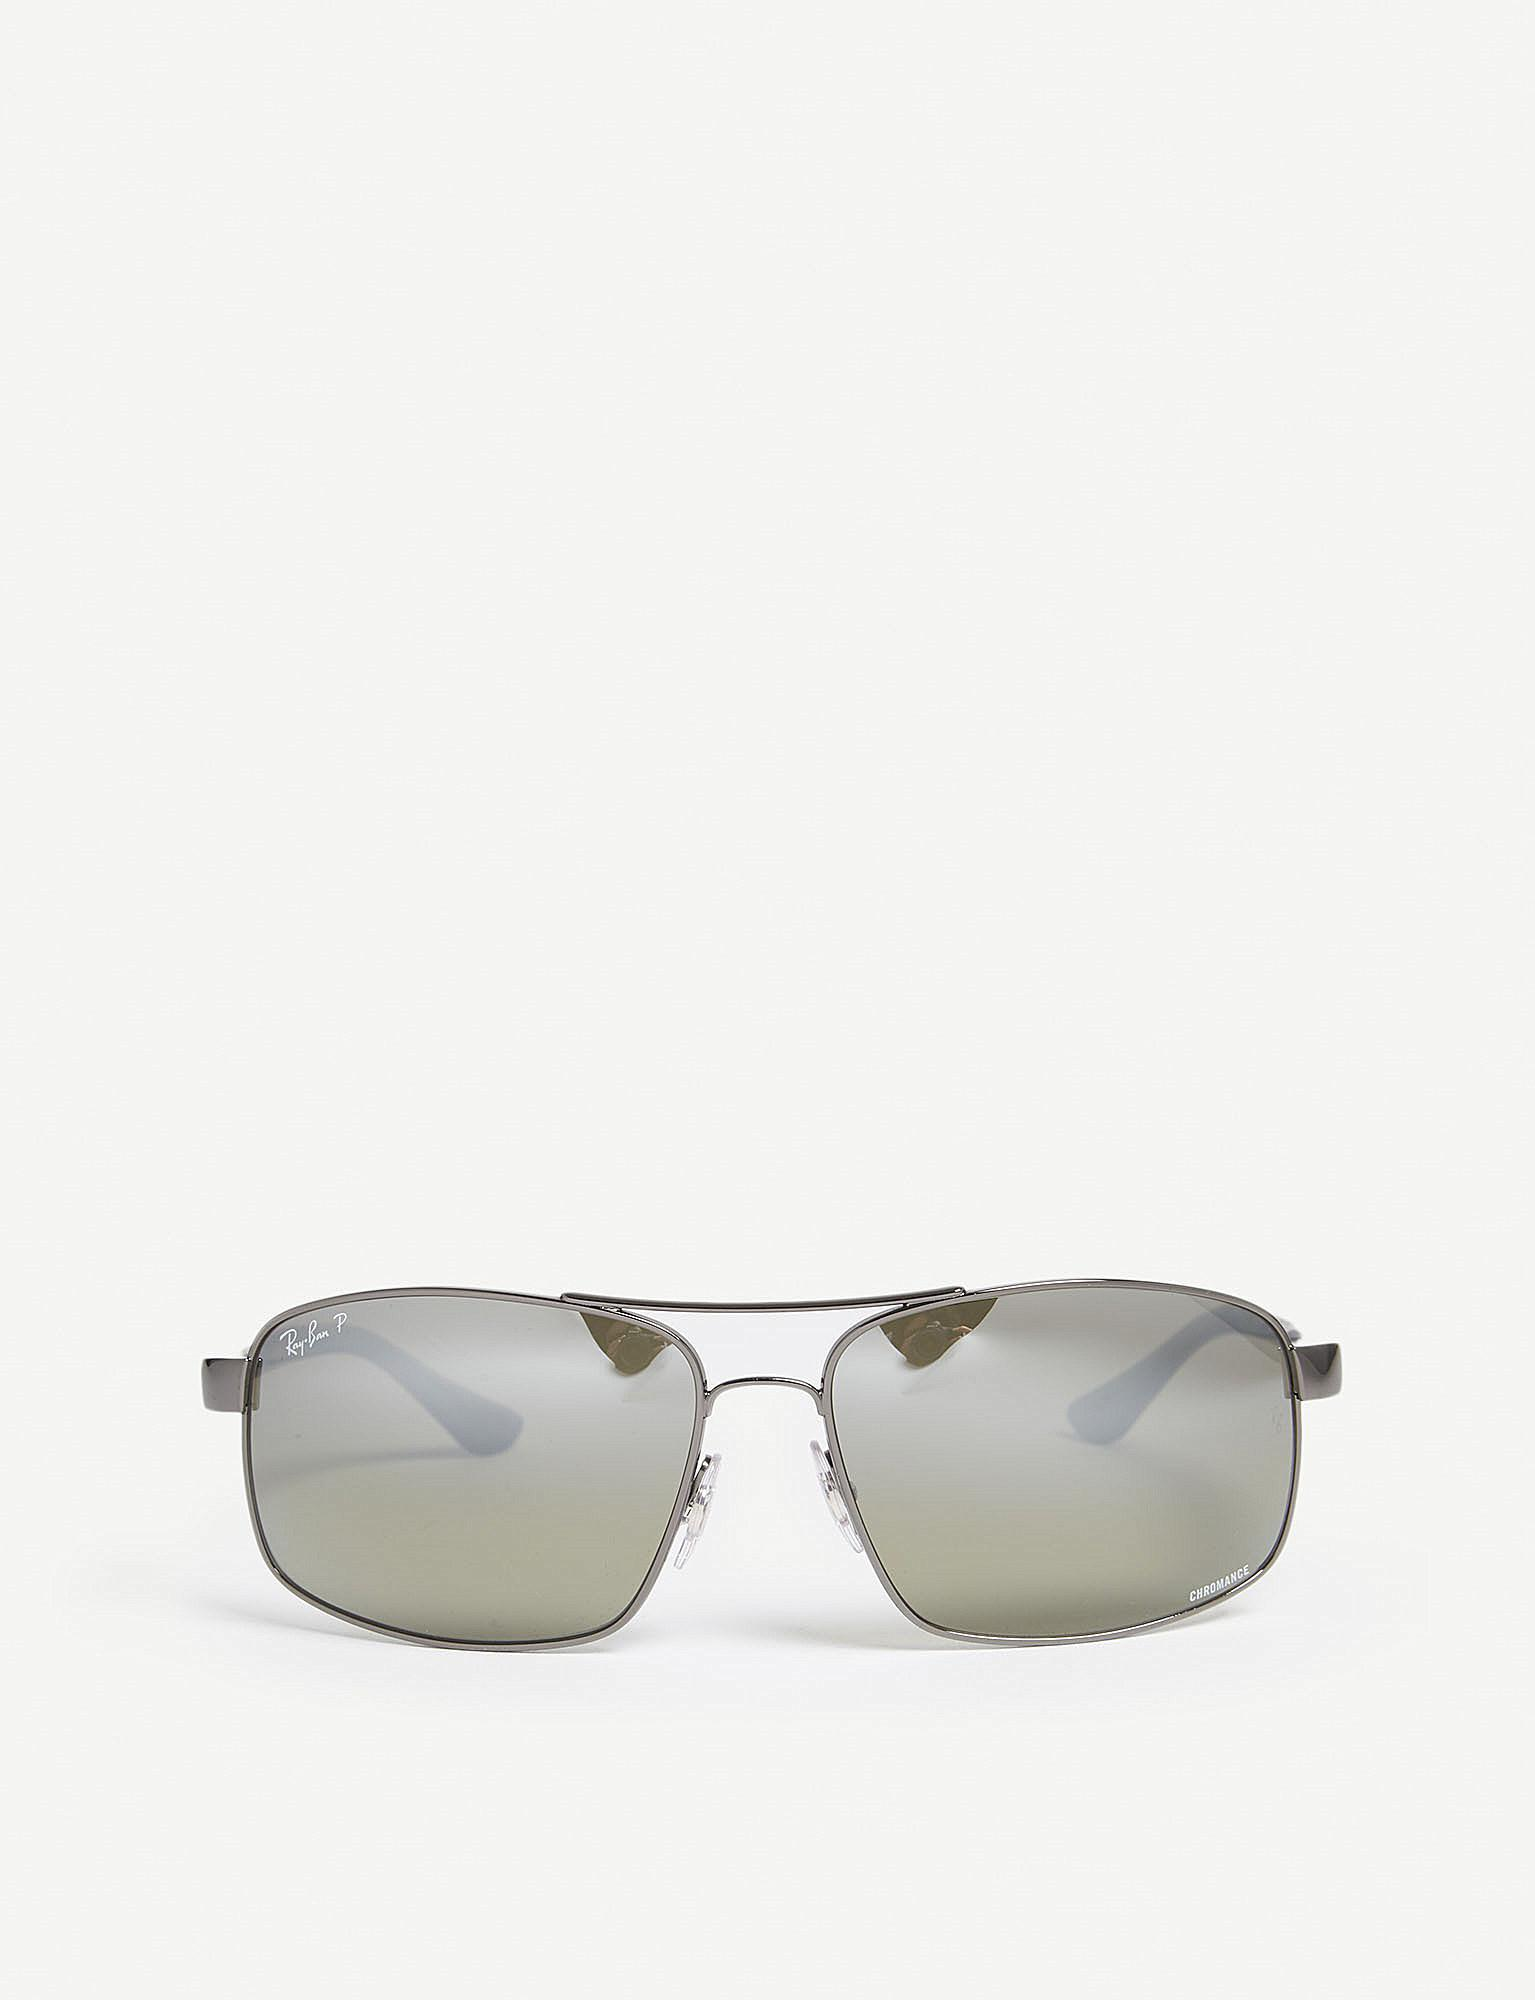 bde75cdfab8 Lyst - Ray-Ban Rb3604ch Chromance Square-frame Sunglasses in Gray ...